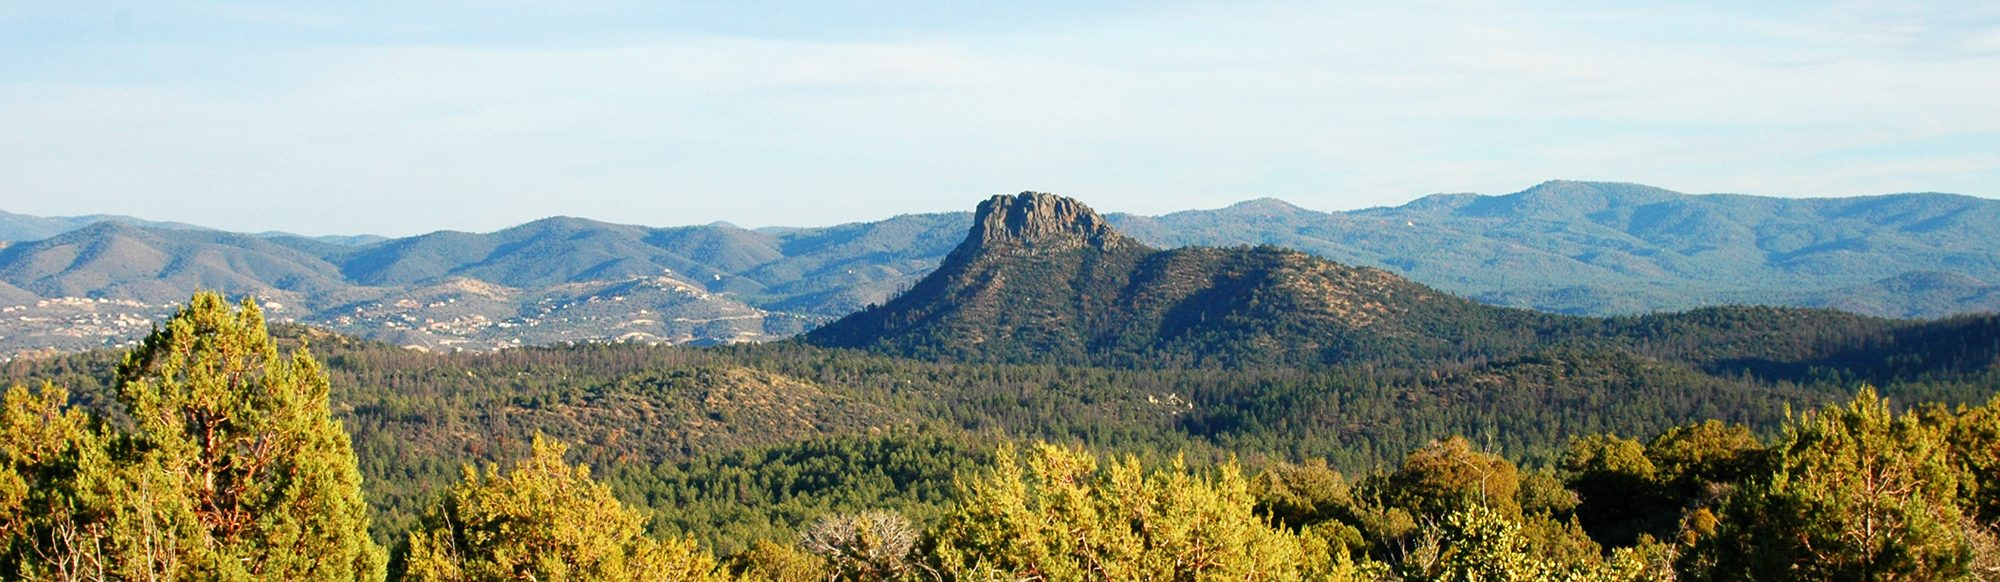 Thumb Butte Prescott Arizona Realtors Julie and Dennis Jenning